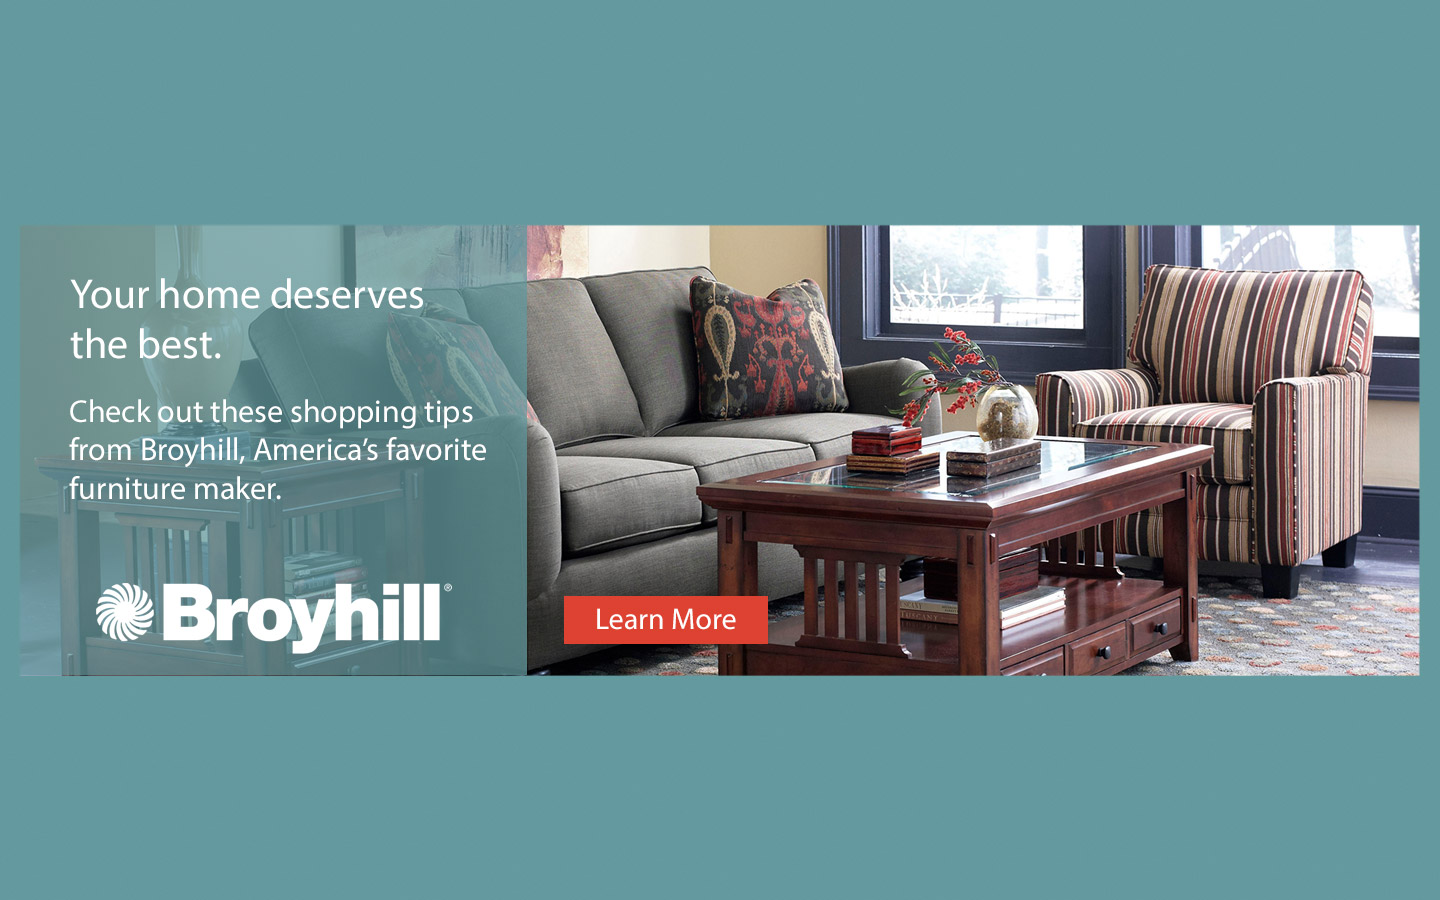 ... Broyhill Wood And Upholstery Shopping Tips Q2 2017